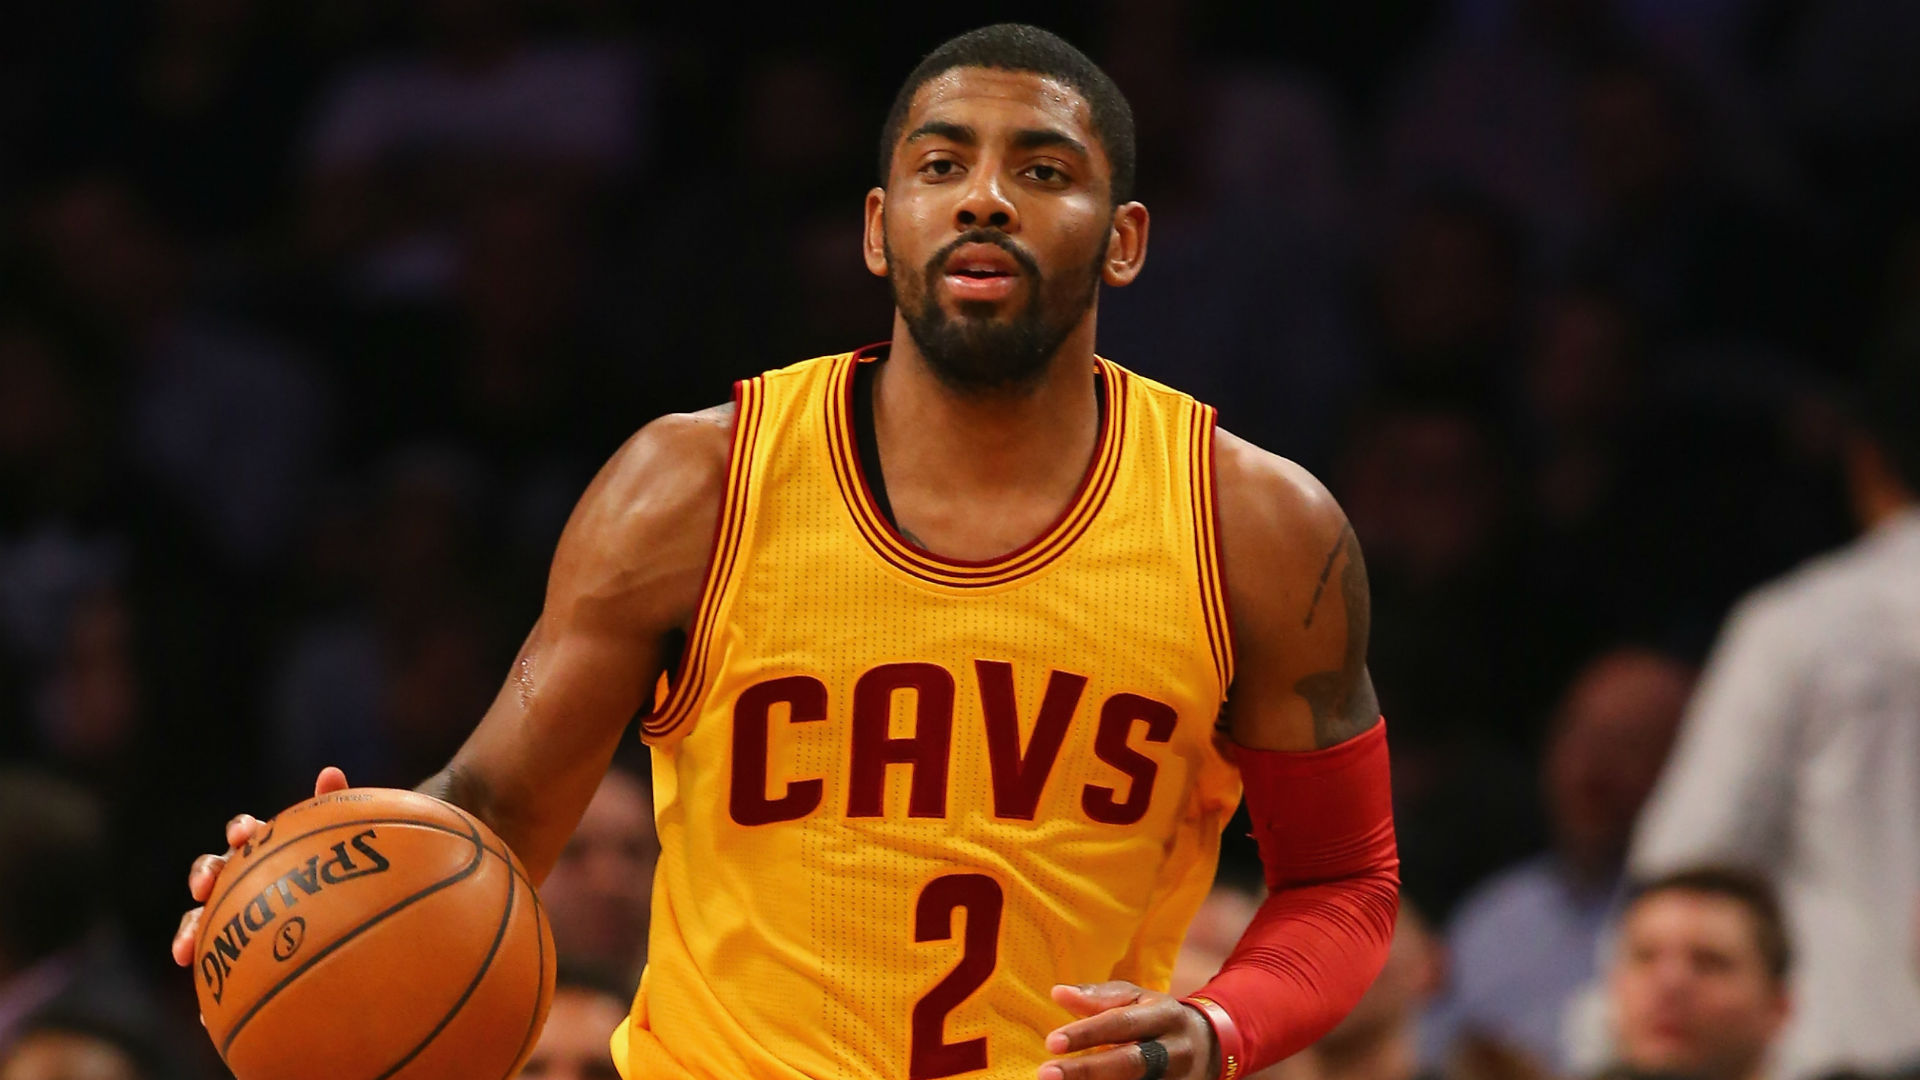 kyrie irving - photo #25